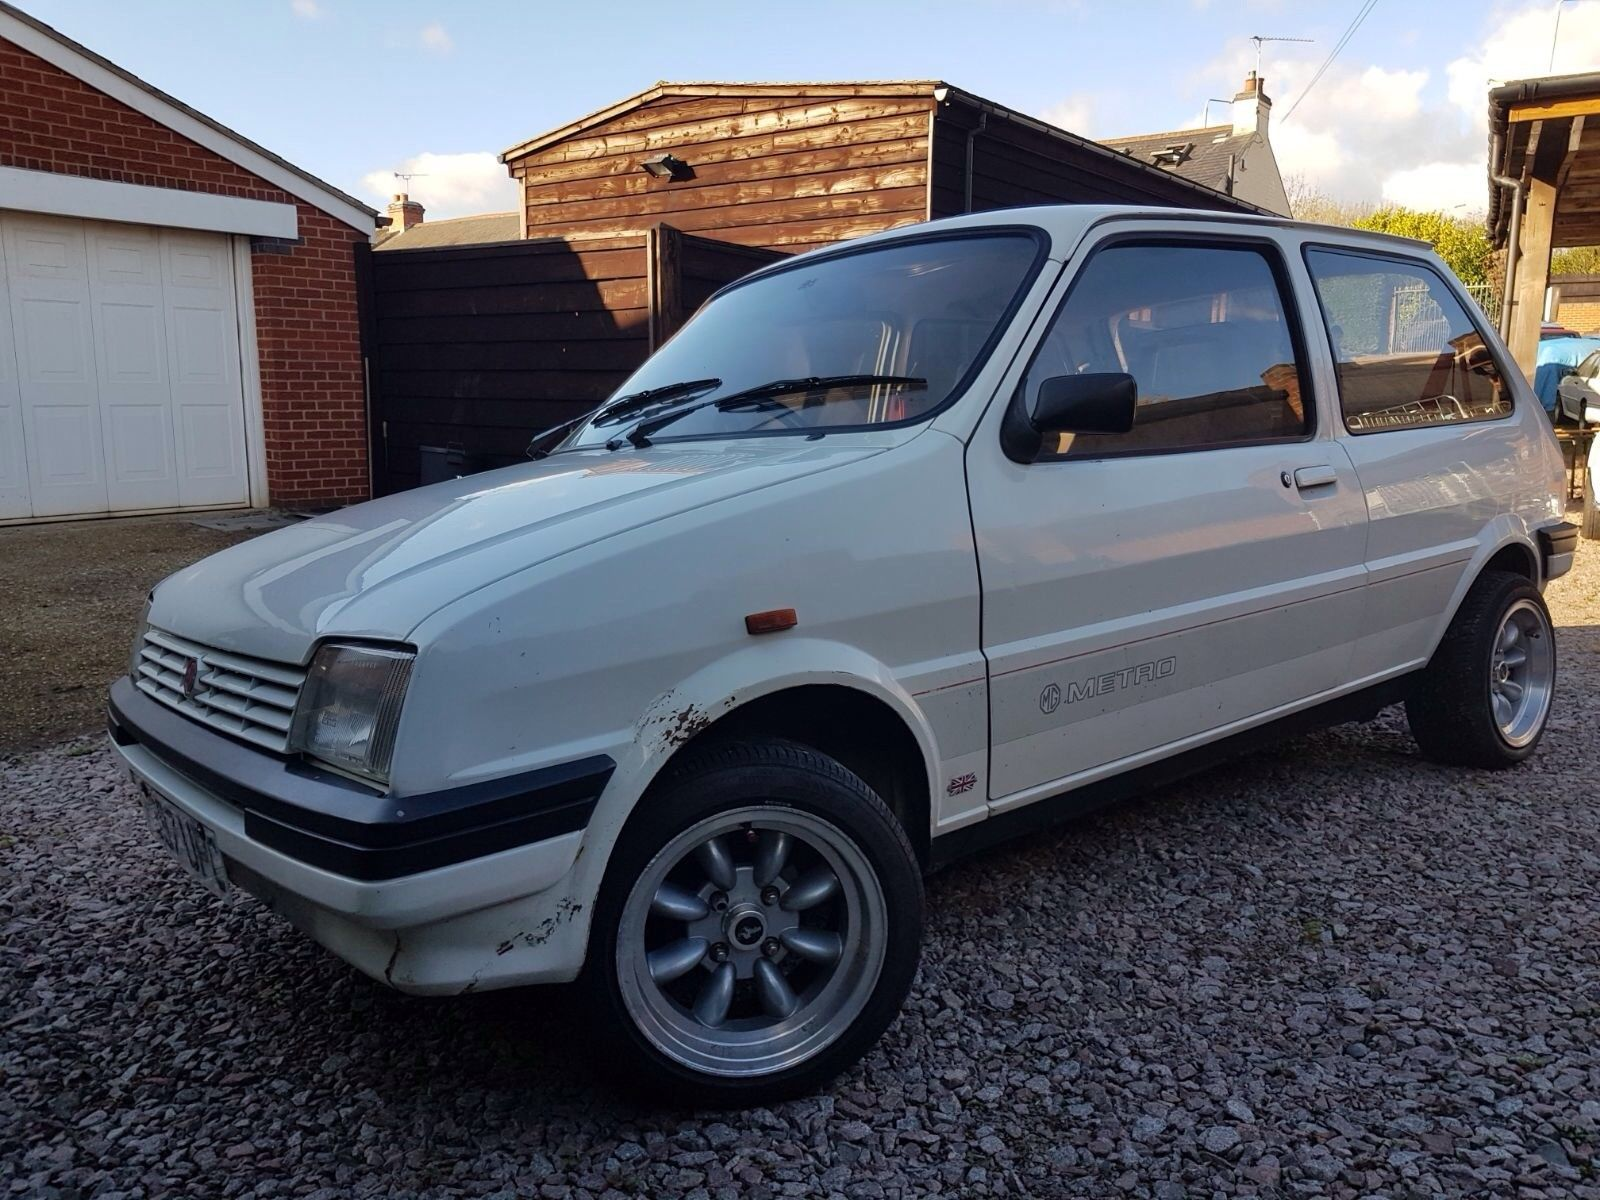 eBay: 1988 MG METRO 1275CC WHITE VERY CLEAN EXAMPLE # ...